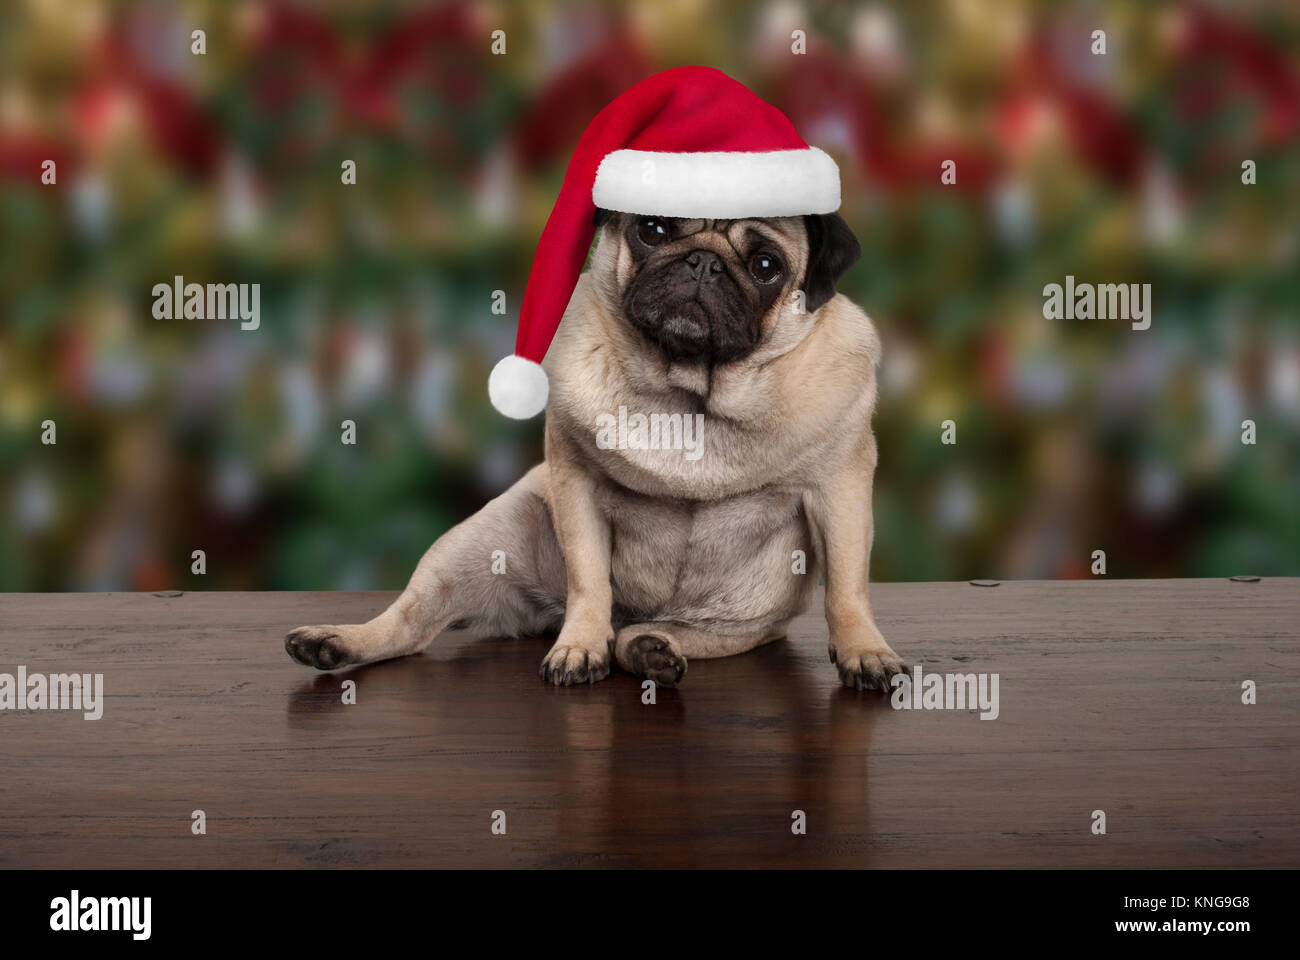 funny Christmas pug puppy dog sitting down on wooden ground, wearing santa claus hat, seasonal background - Stock Image